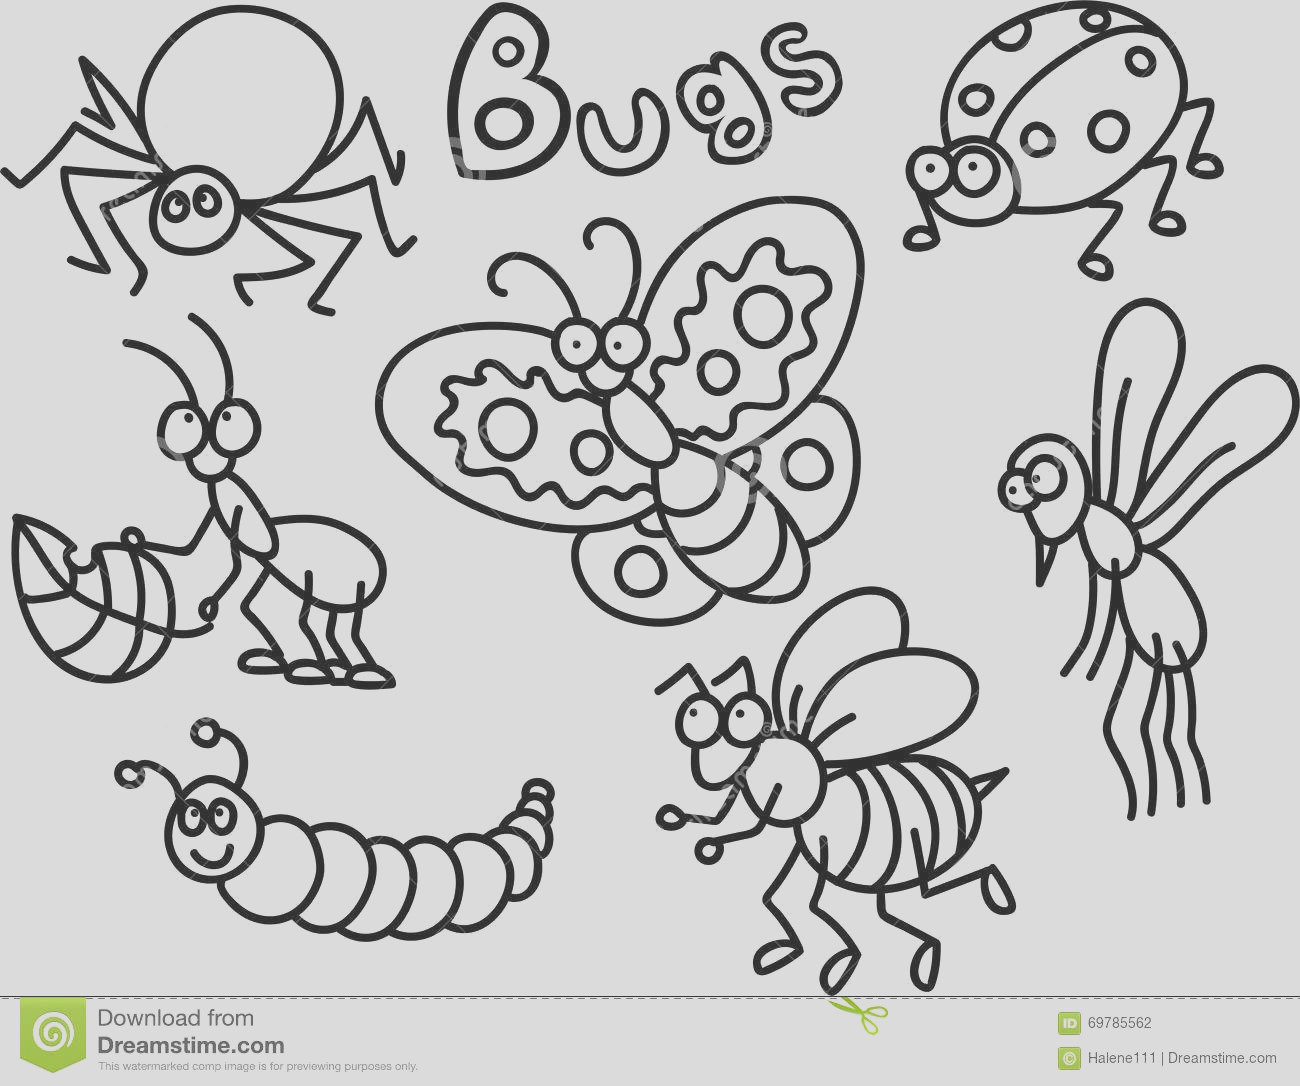 stock illustration bugs coloring page children lot cute cartoon style image